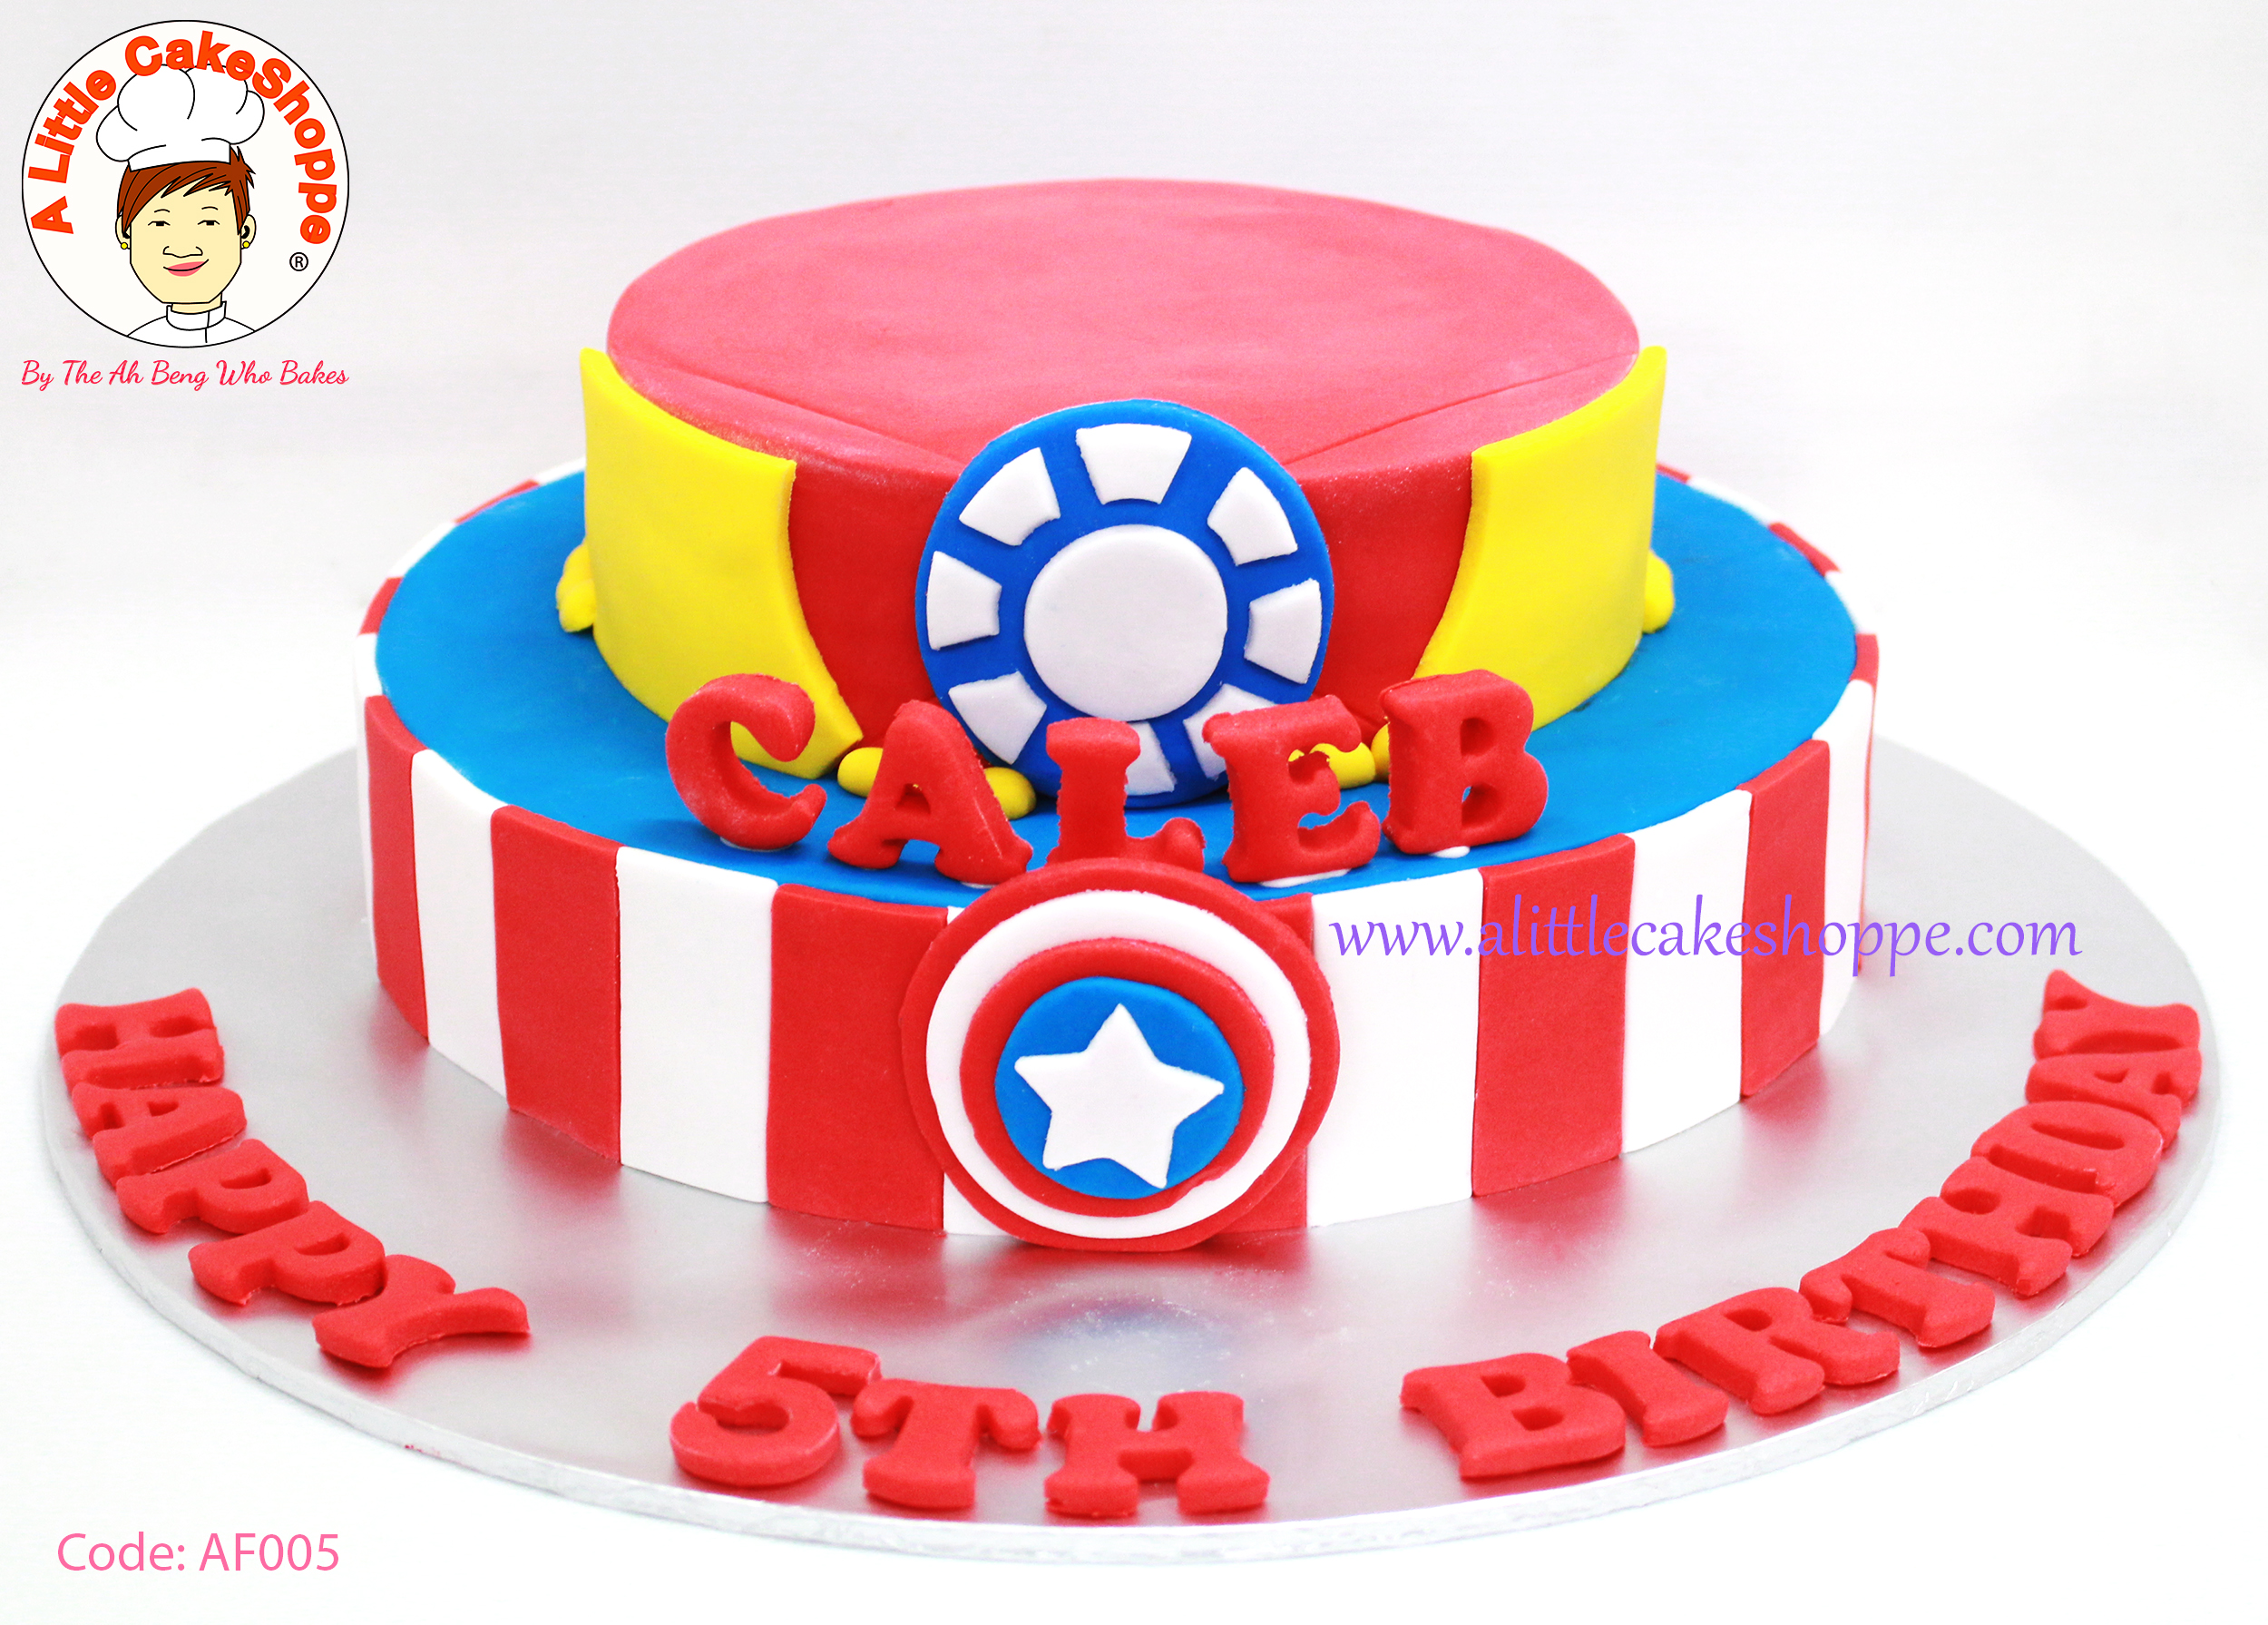 Best Customised Cake Shop Singapore custom cake 2D 3D birthday cake cupcakes desserts wedding corporate events anniversary 1st birthday 21st birthday fondant fresh cream buttercream cakes alittlecakeshoppe a little cake shoppe compliments review singapore bakers SG cake shop cakeshop ah beng who bakes super hero avengers dc hero batman captain america spiderman superman ironman thor hulk